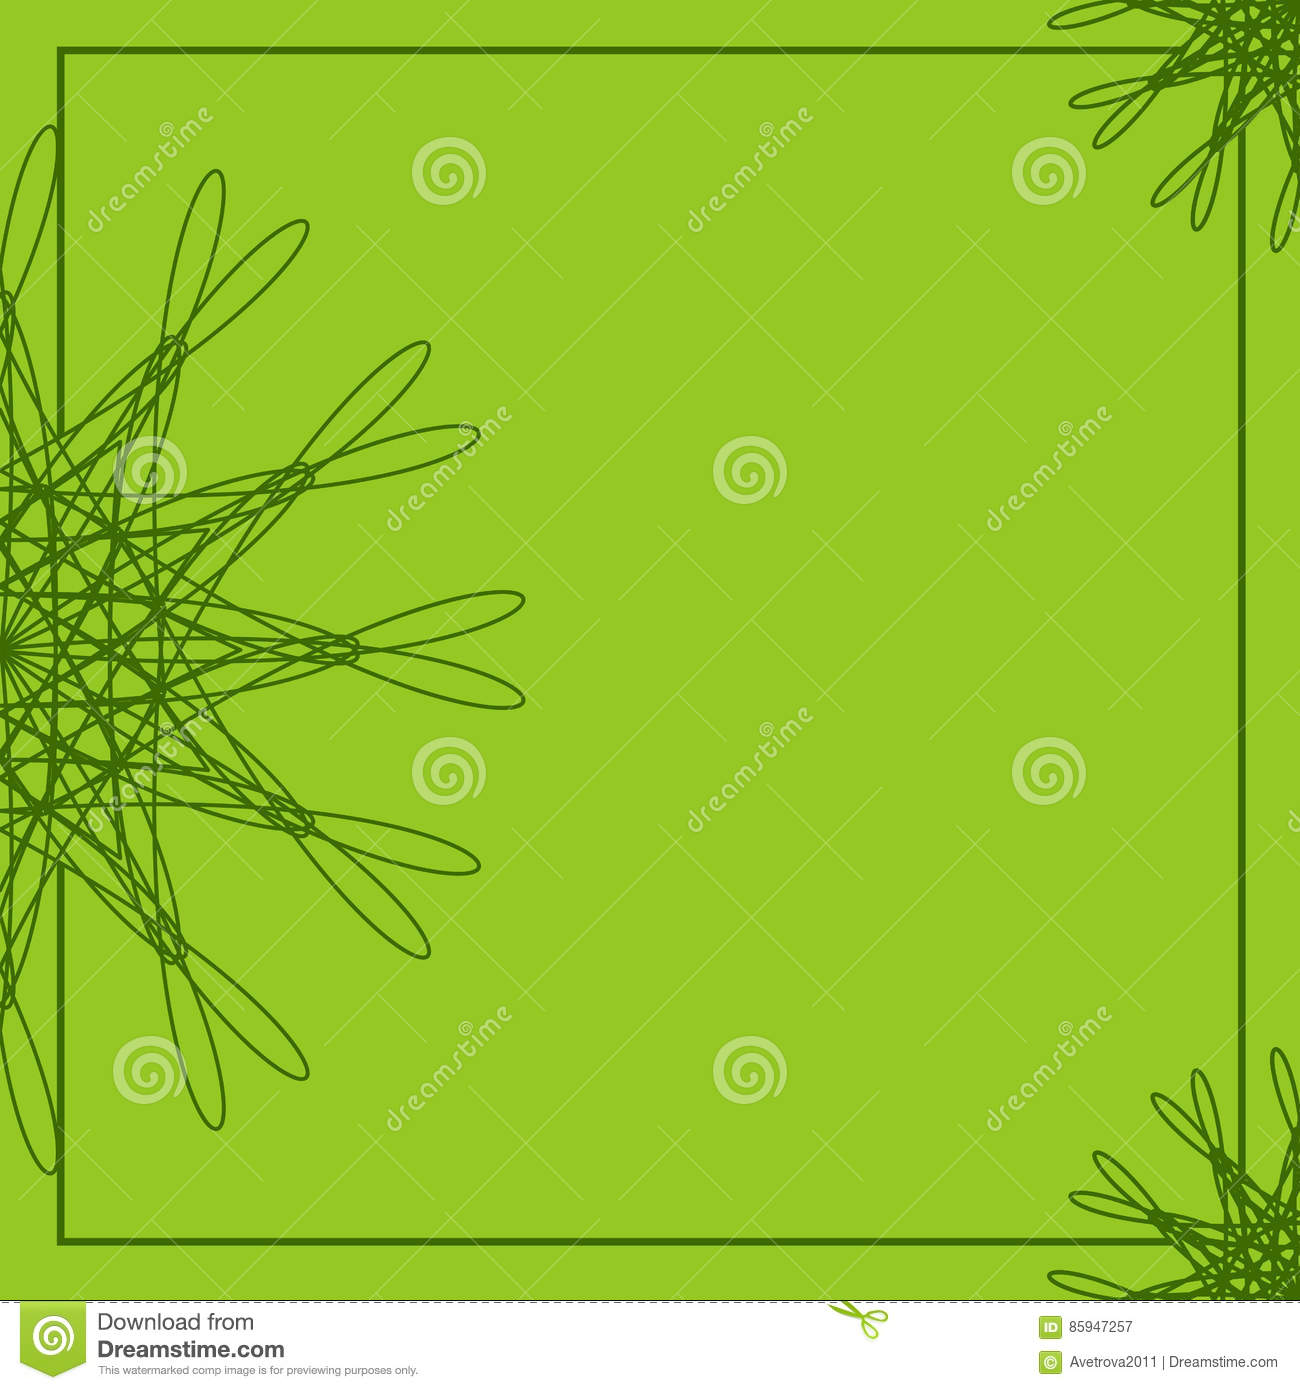 Green Abstract Floral Frame Geometric Border Template Background